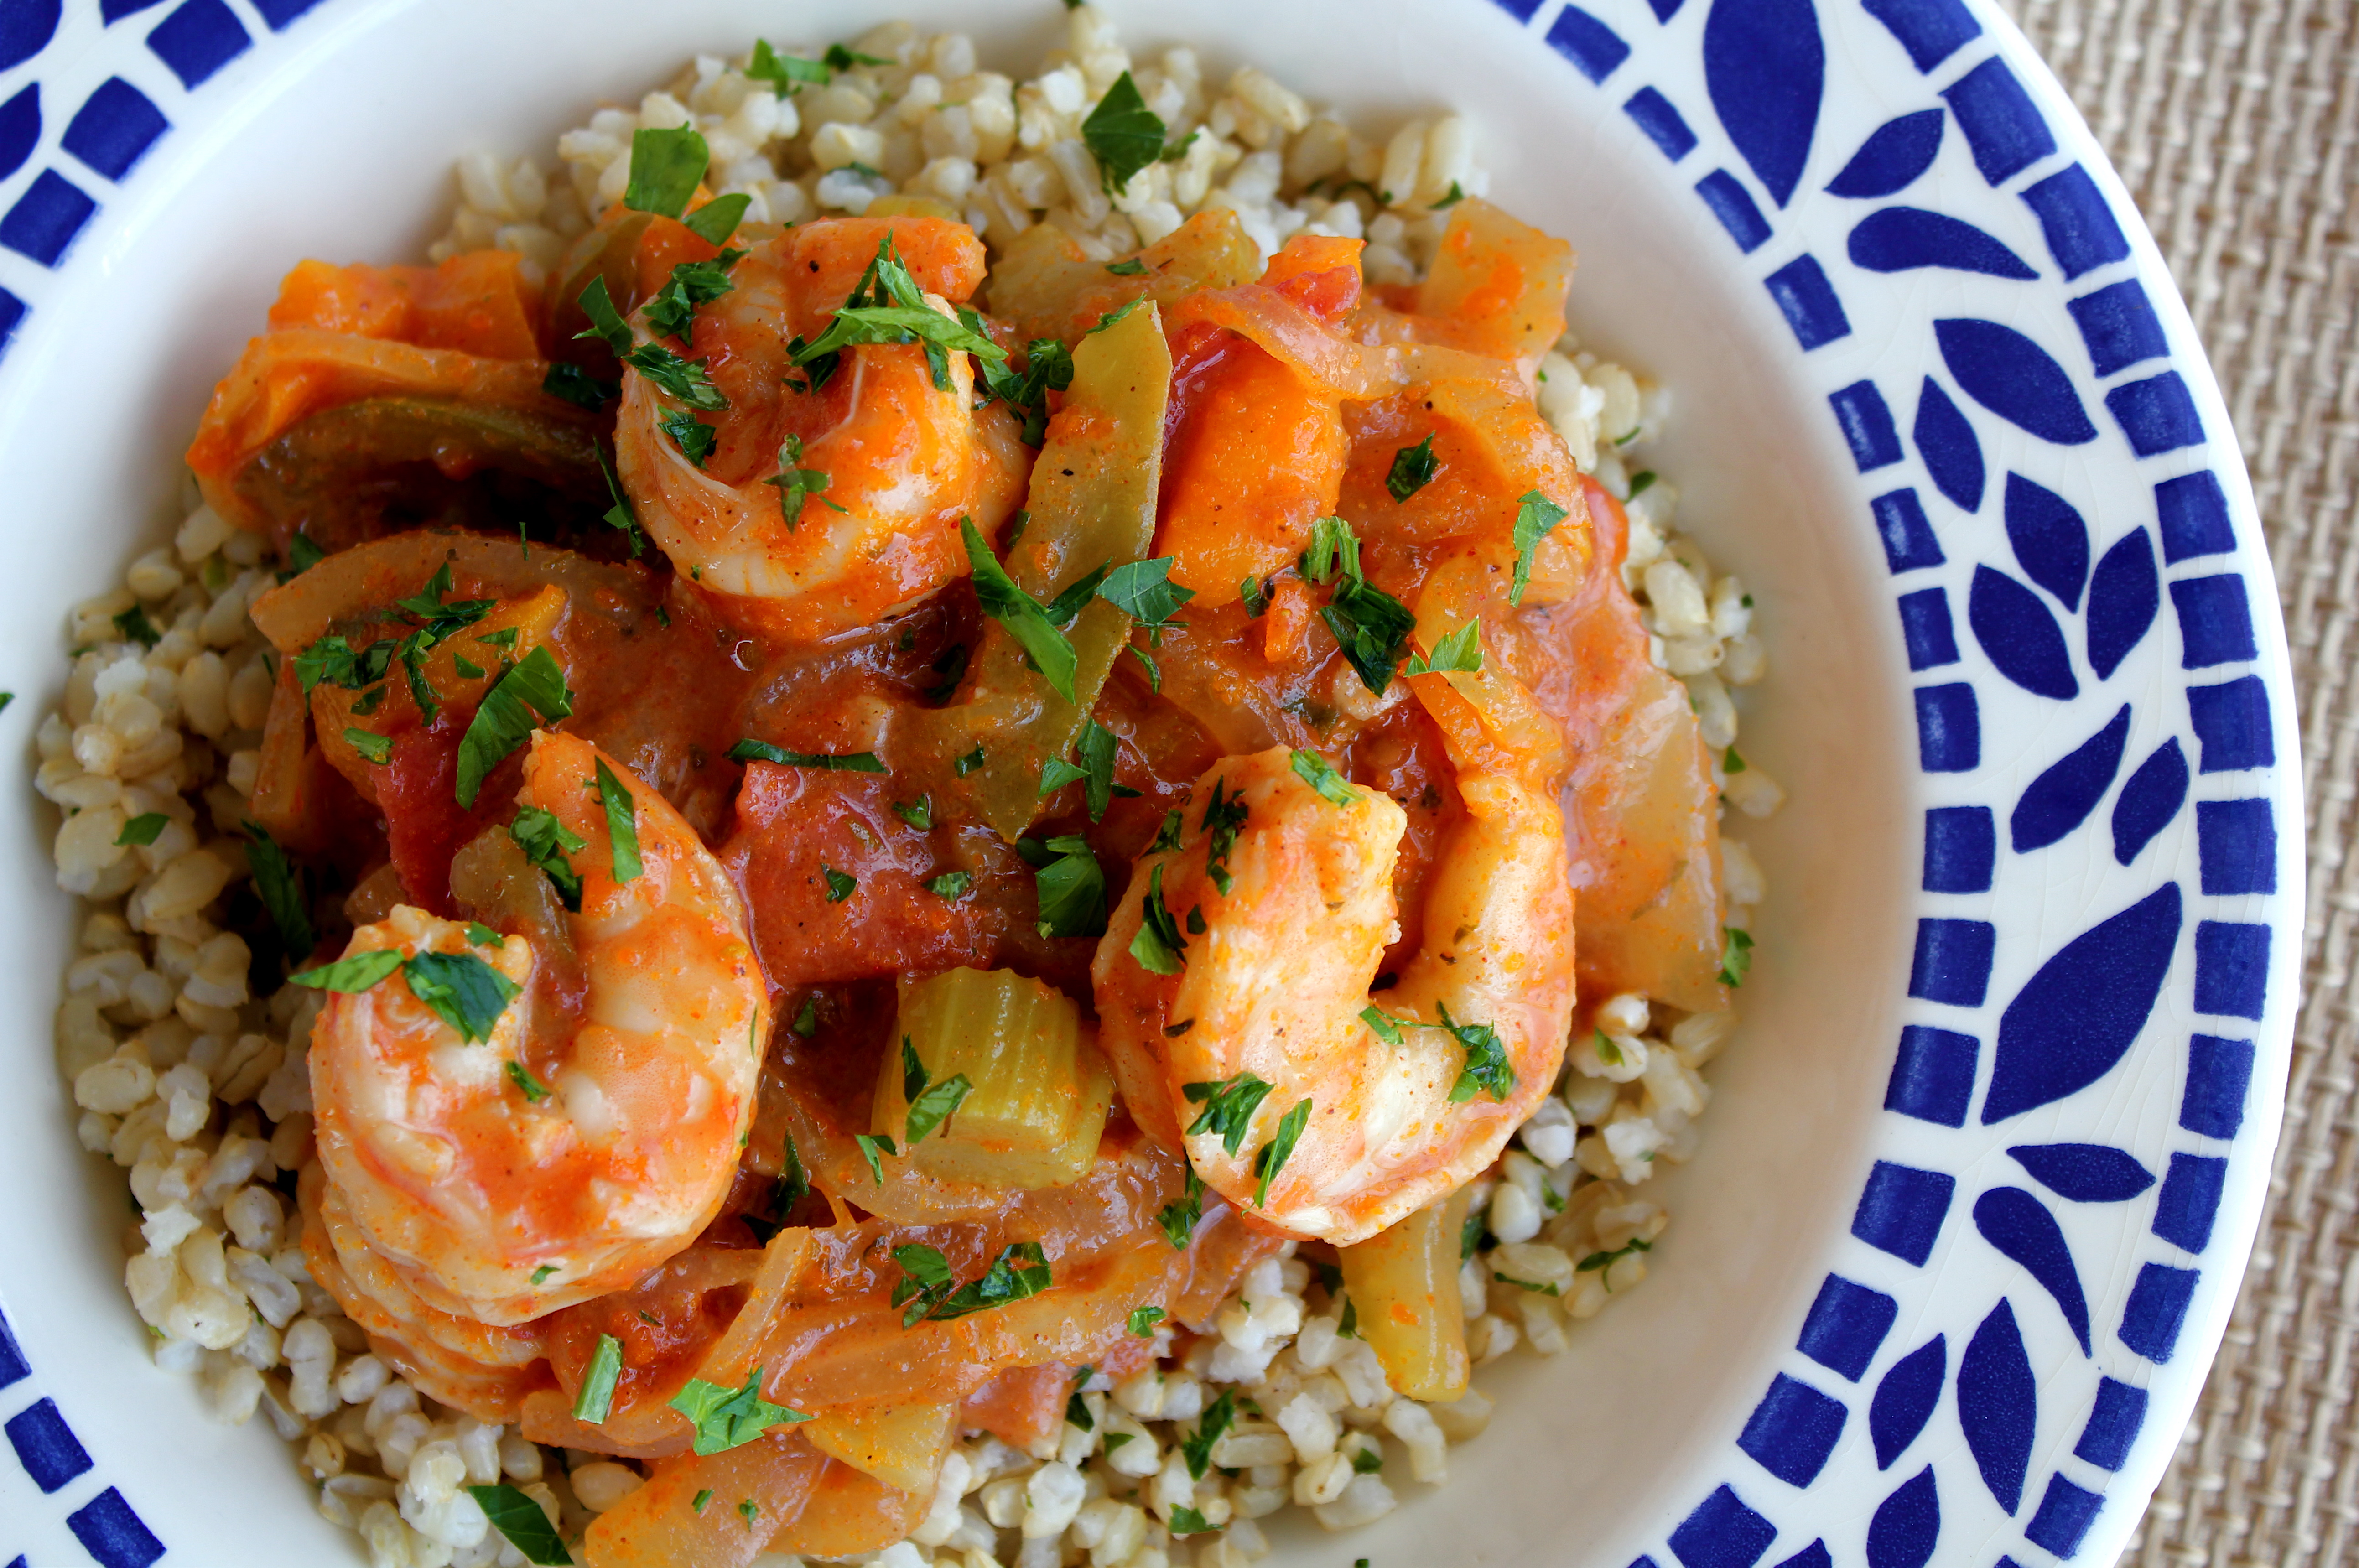 New Orleans Style Shrimp adapted from Martha Stewart